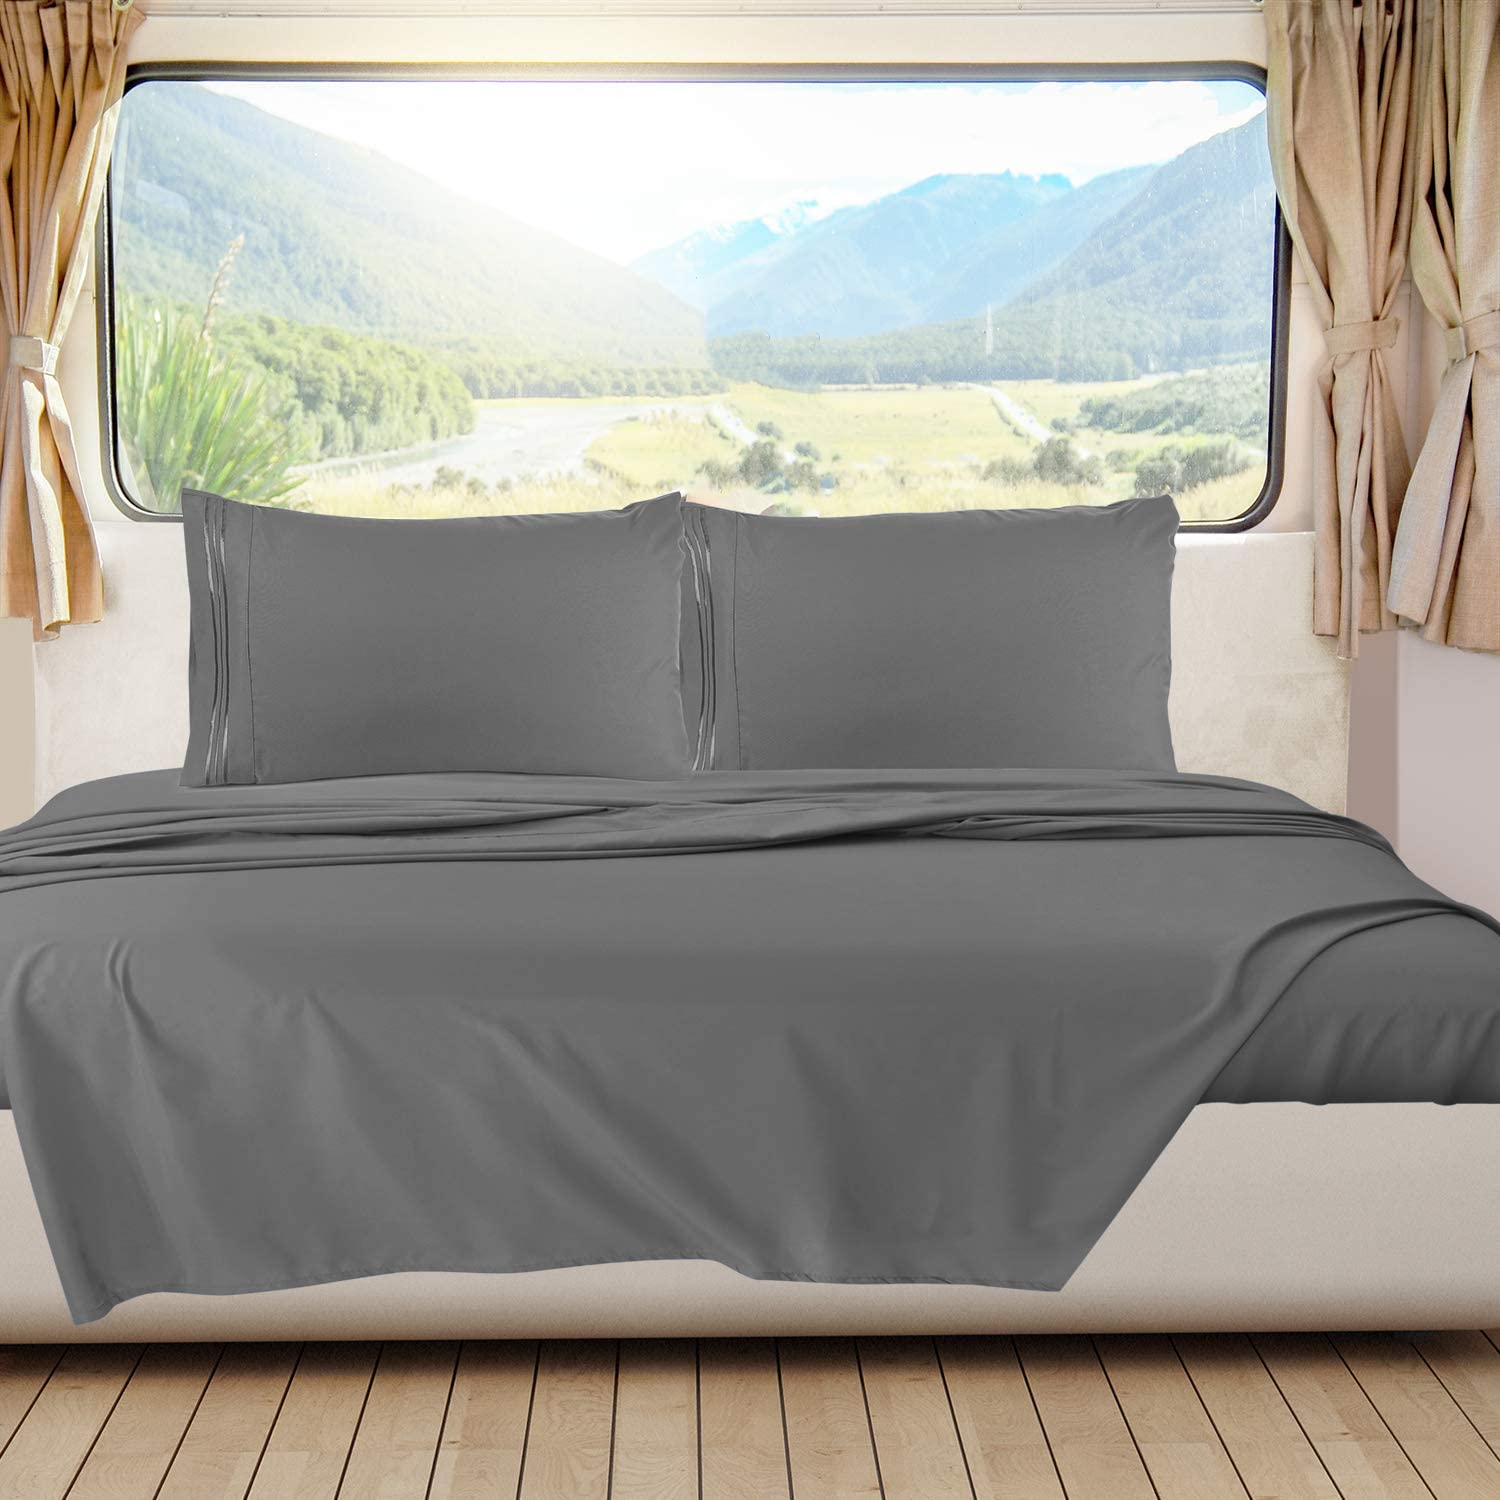 Nestl Bedding Short Queen Sheets, RV Sheets Set for Campers, Deep Pockets Fitted RV Bunk Sheets